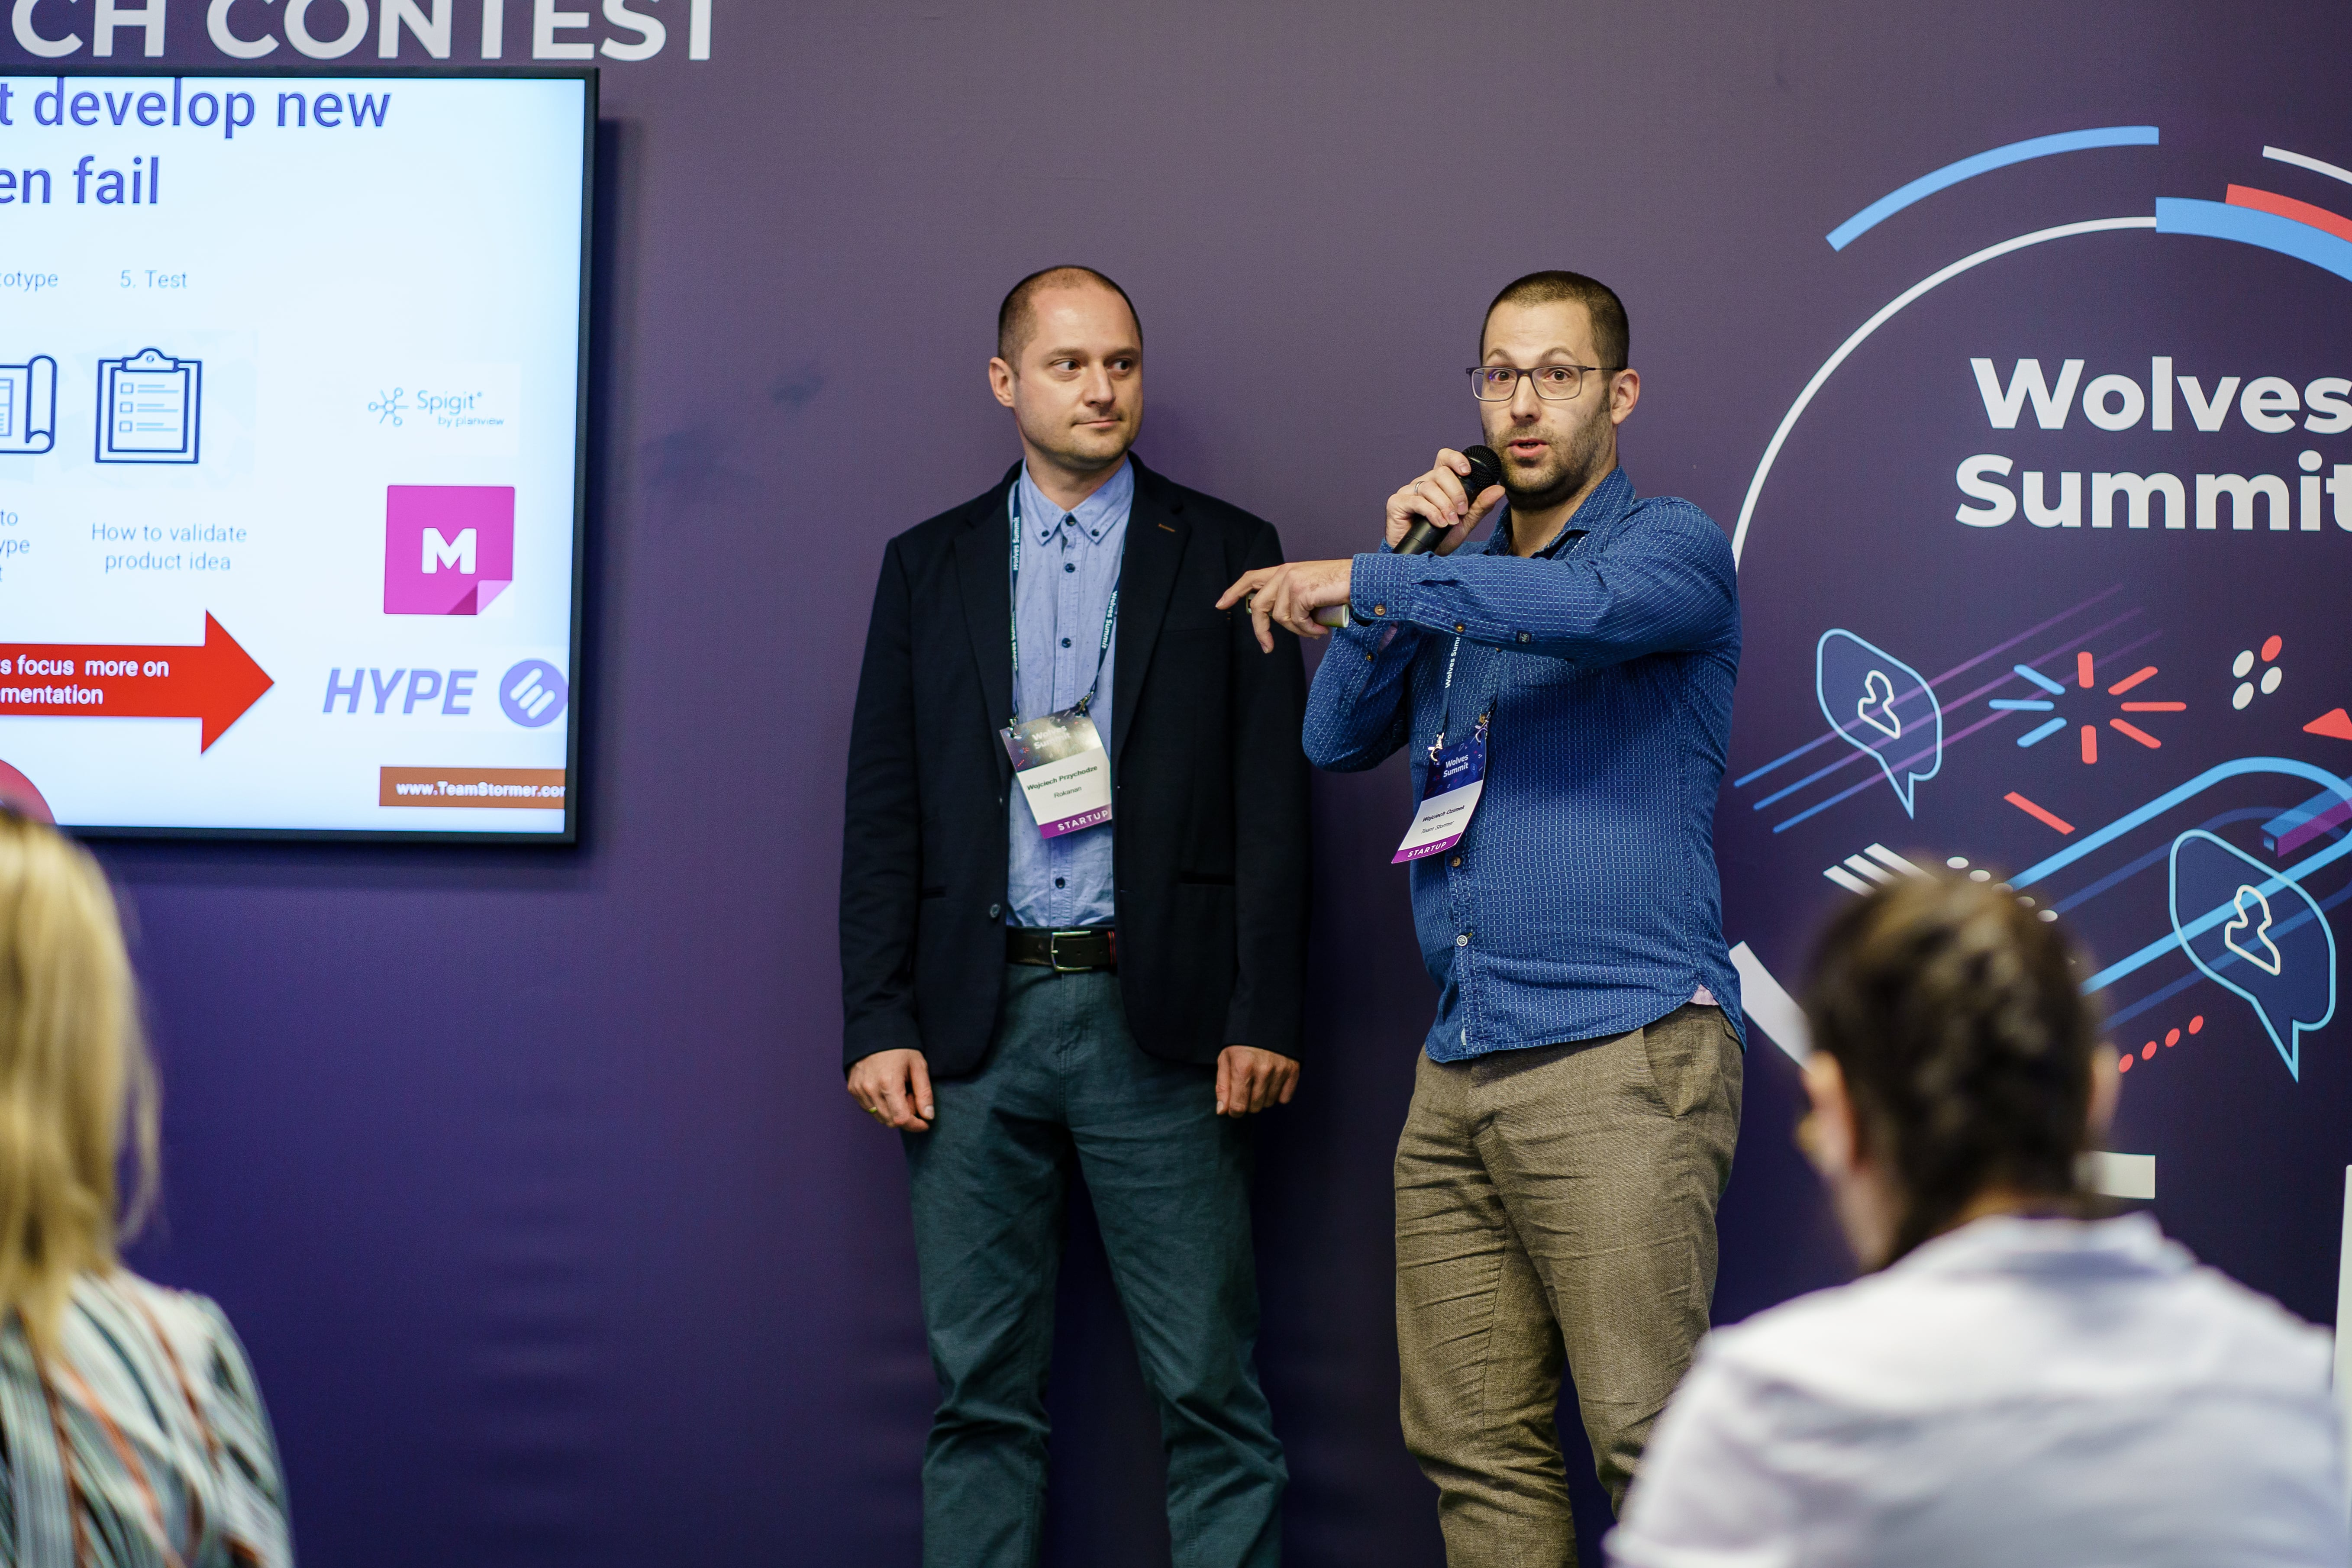 Wolves Summit Great Pitch Contest